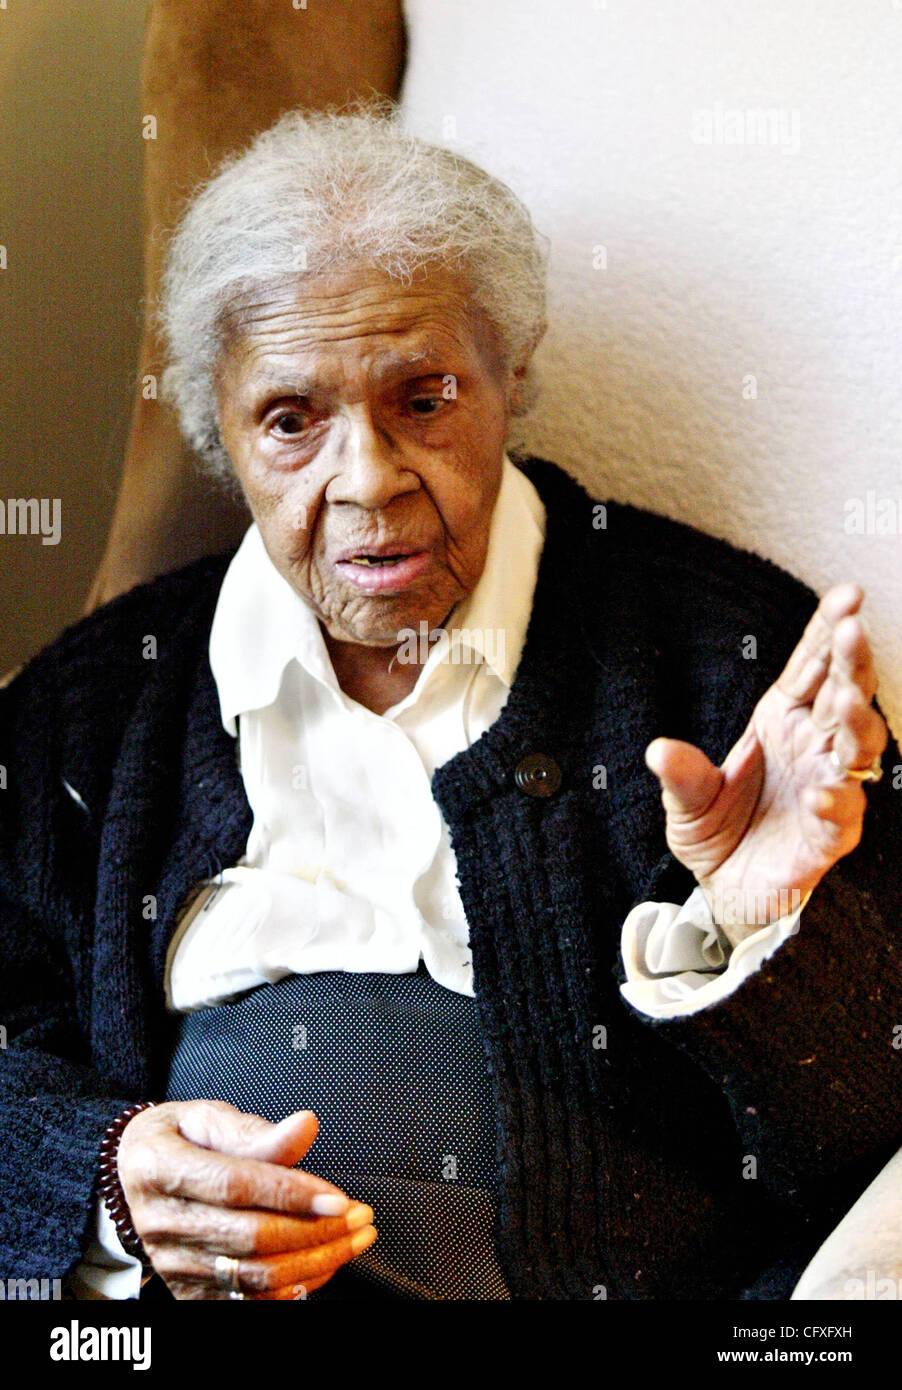 Apr 12, 2007 - Oakland, CA, USA - JOSEPHINE DUKES who is 105 years old, is currently a resident at the Matilda Brown - Stock Image